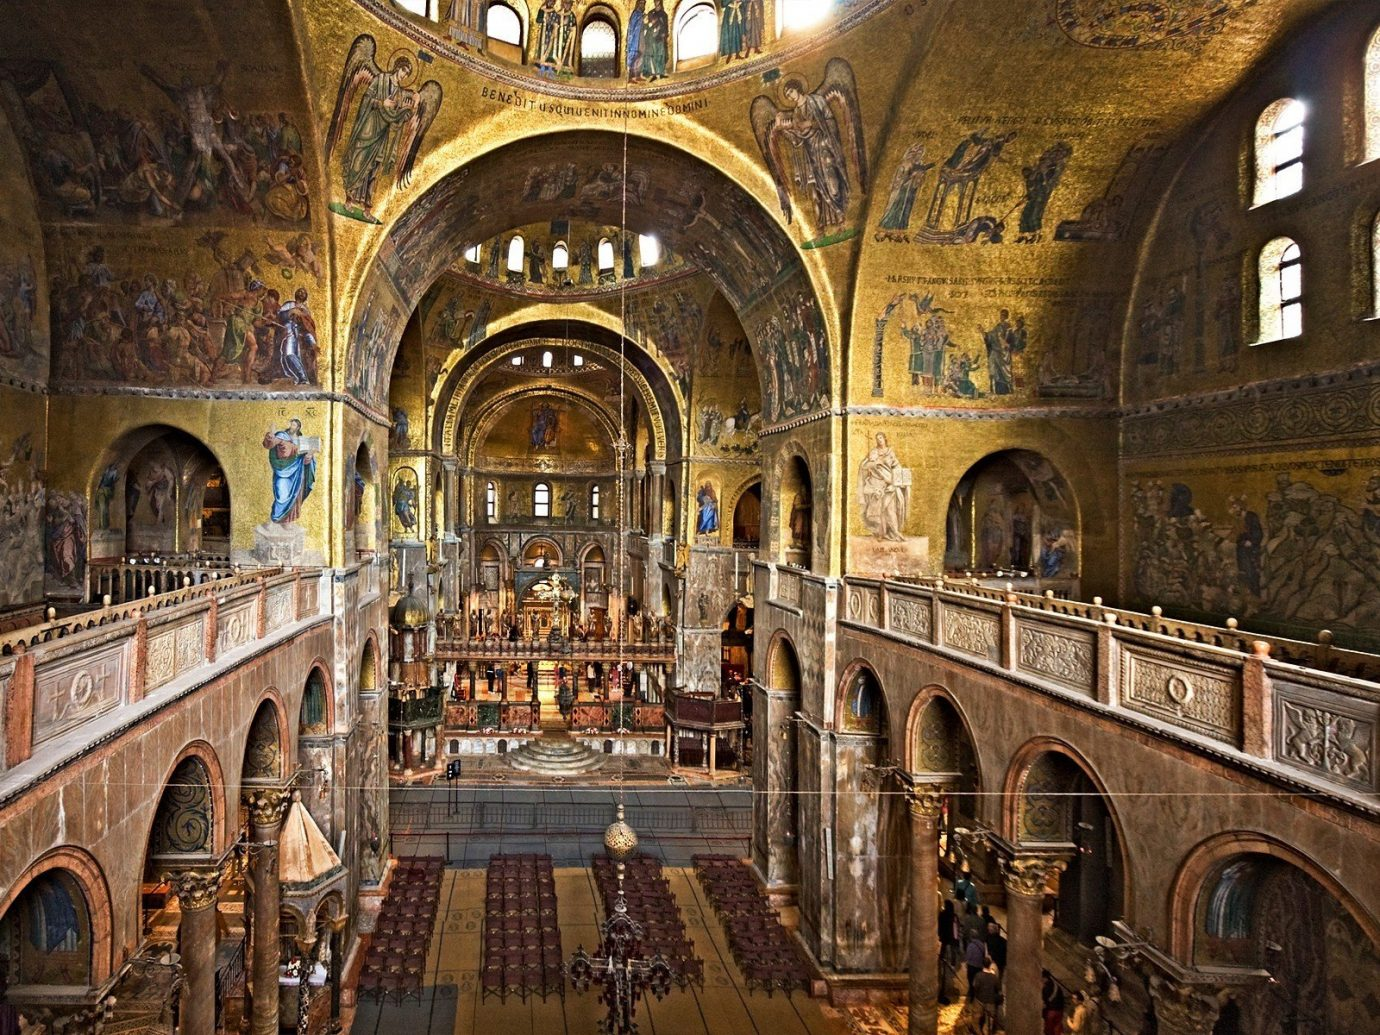 Trip Ideas building basilica Church byzantine architecture place of worship ancient history cathedral middle ages monastery chapel arcade synagogue palace arch